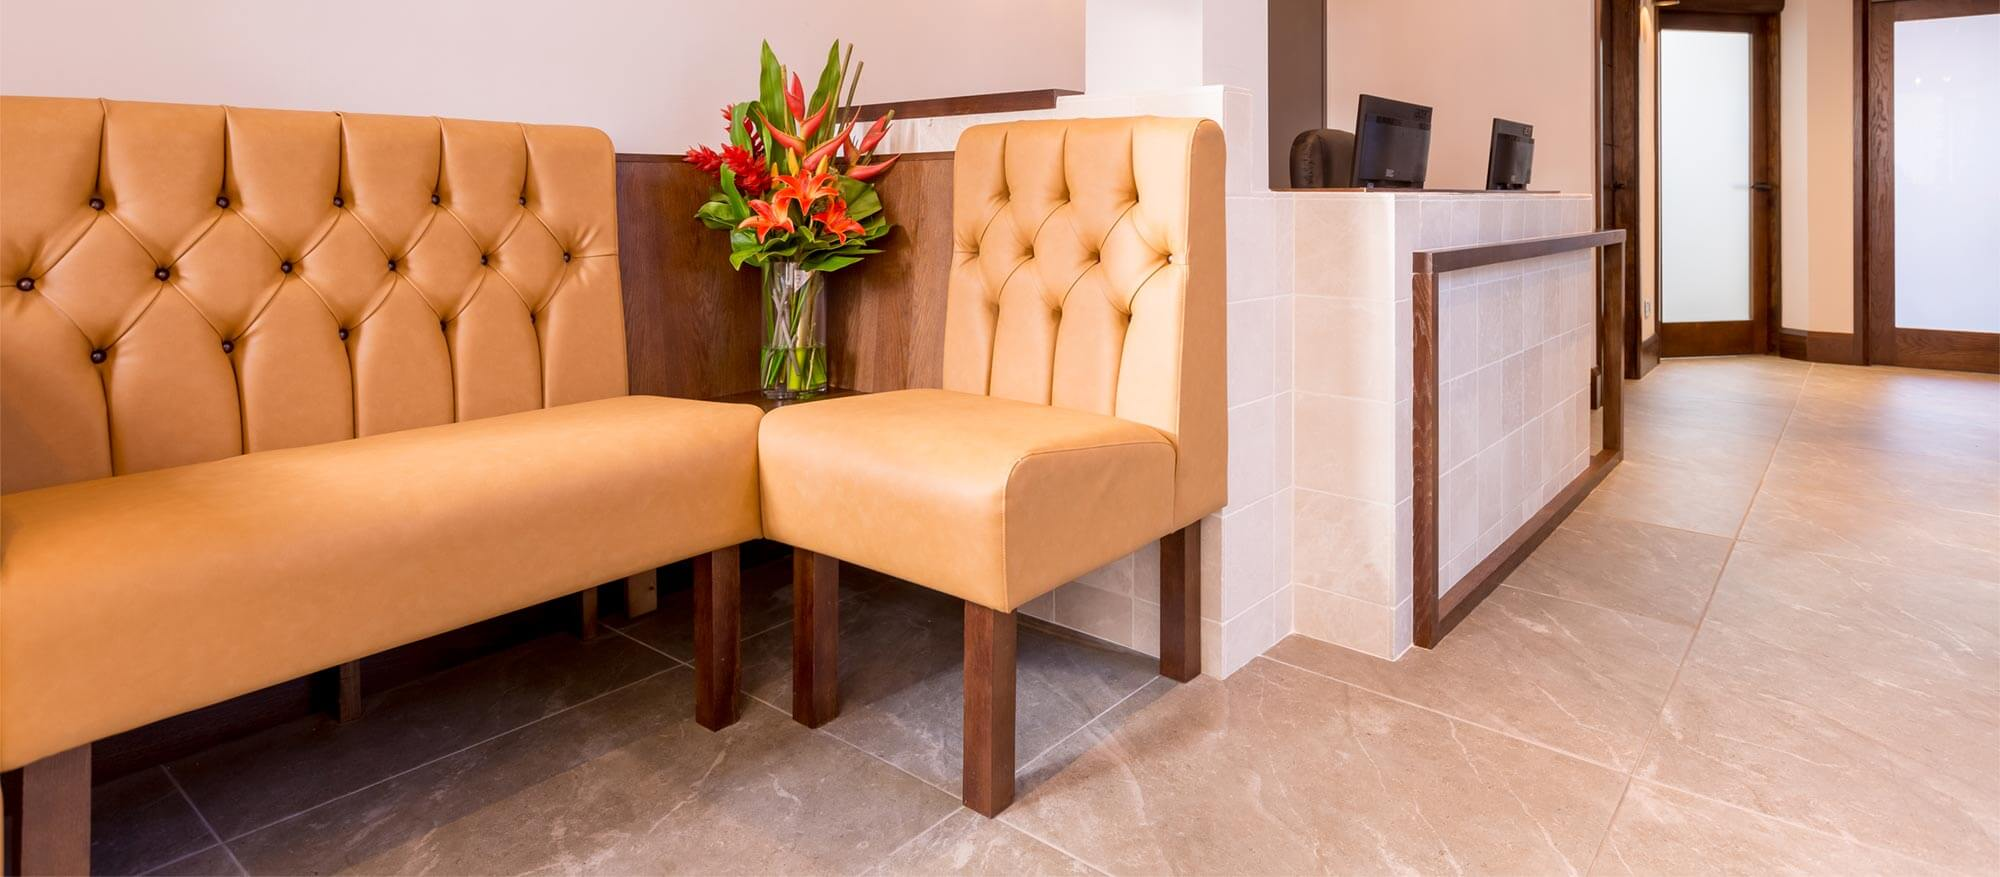 3 Design Themes That Will Transform the Reception of Your Dental Practice